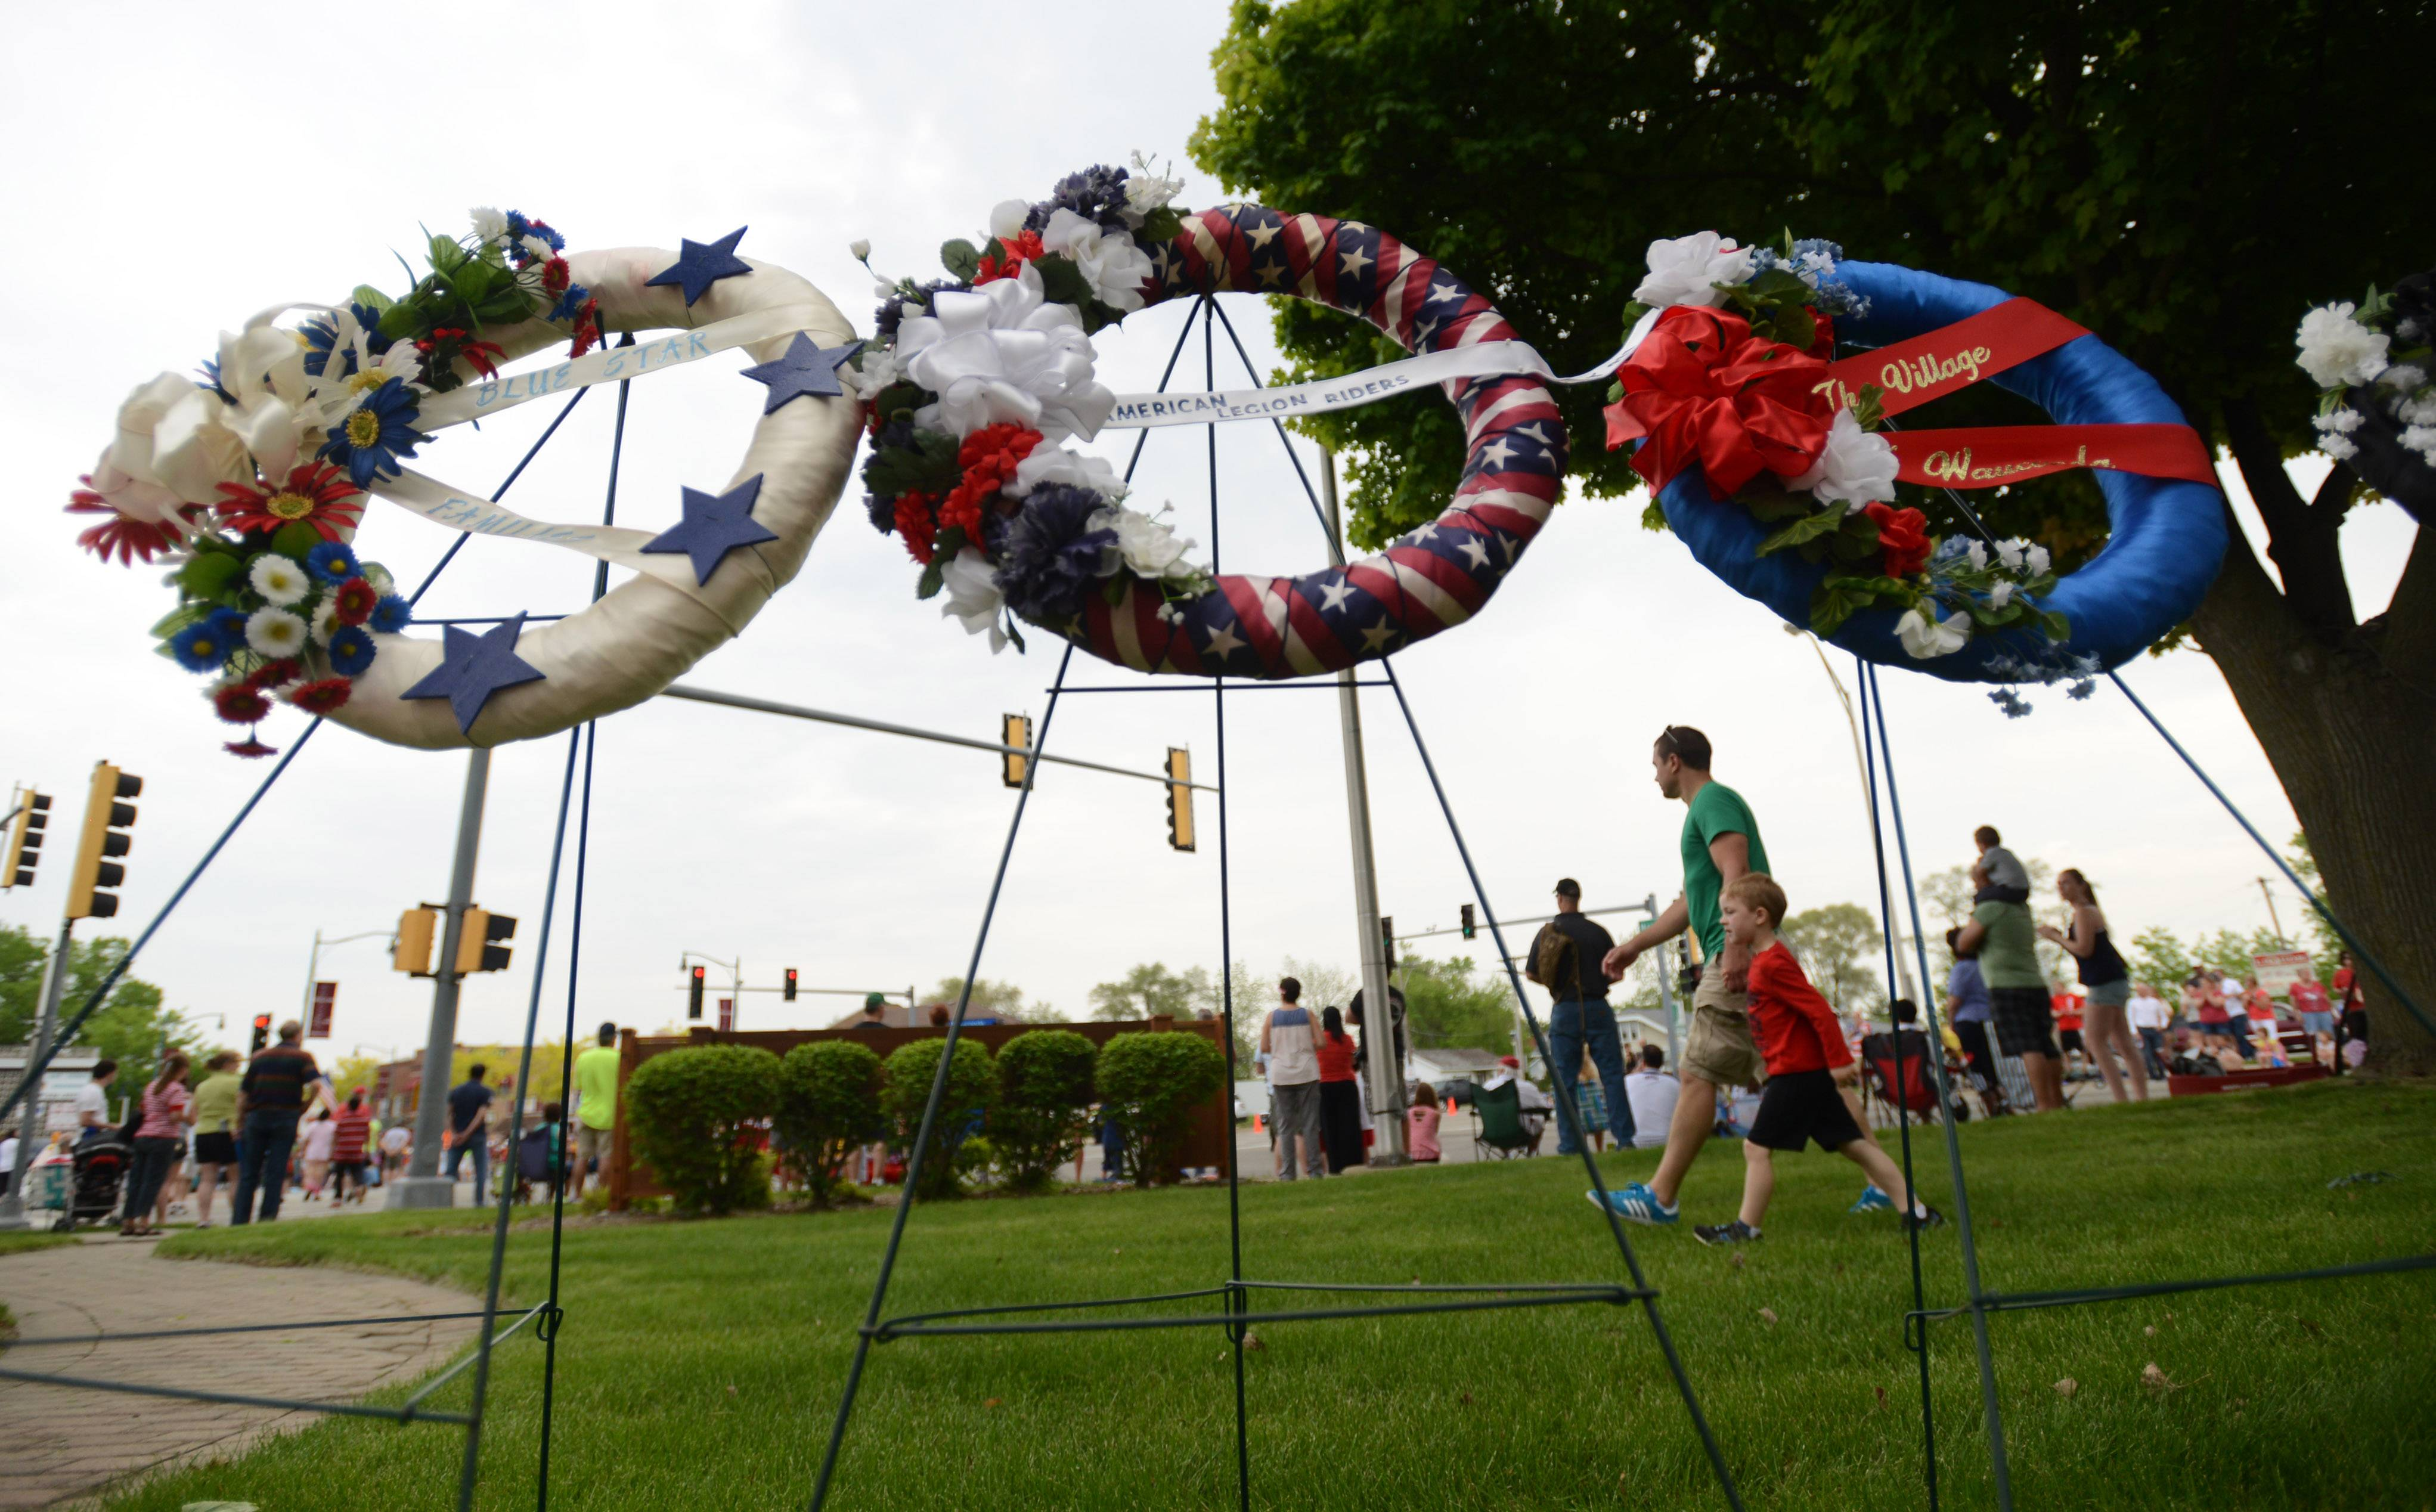 Wreaths are placed at Memorial Park on Route 176 and Main Street in Wauconda during the village's Memorial Day parade and ceremony.